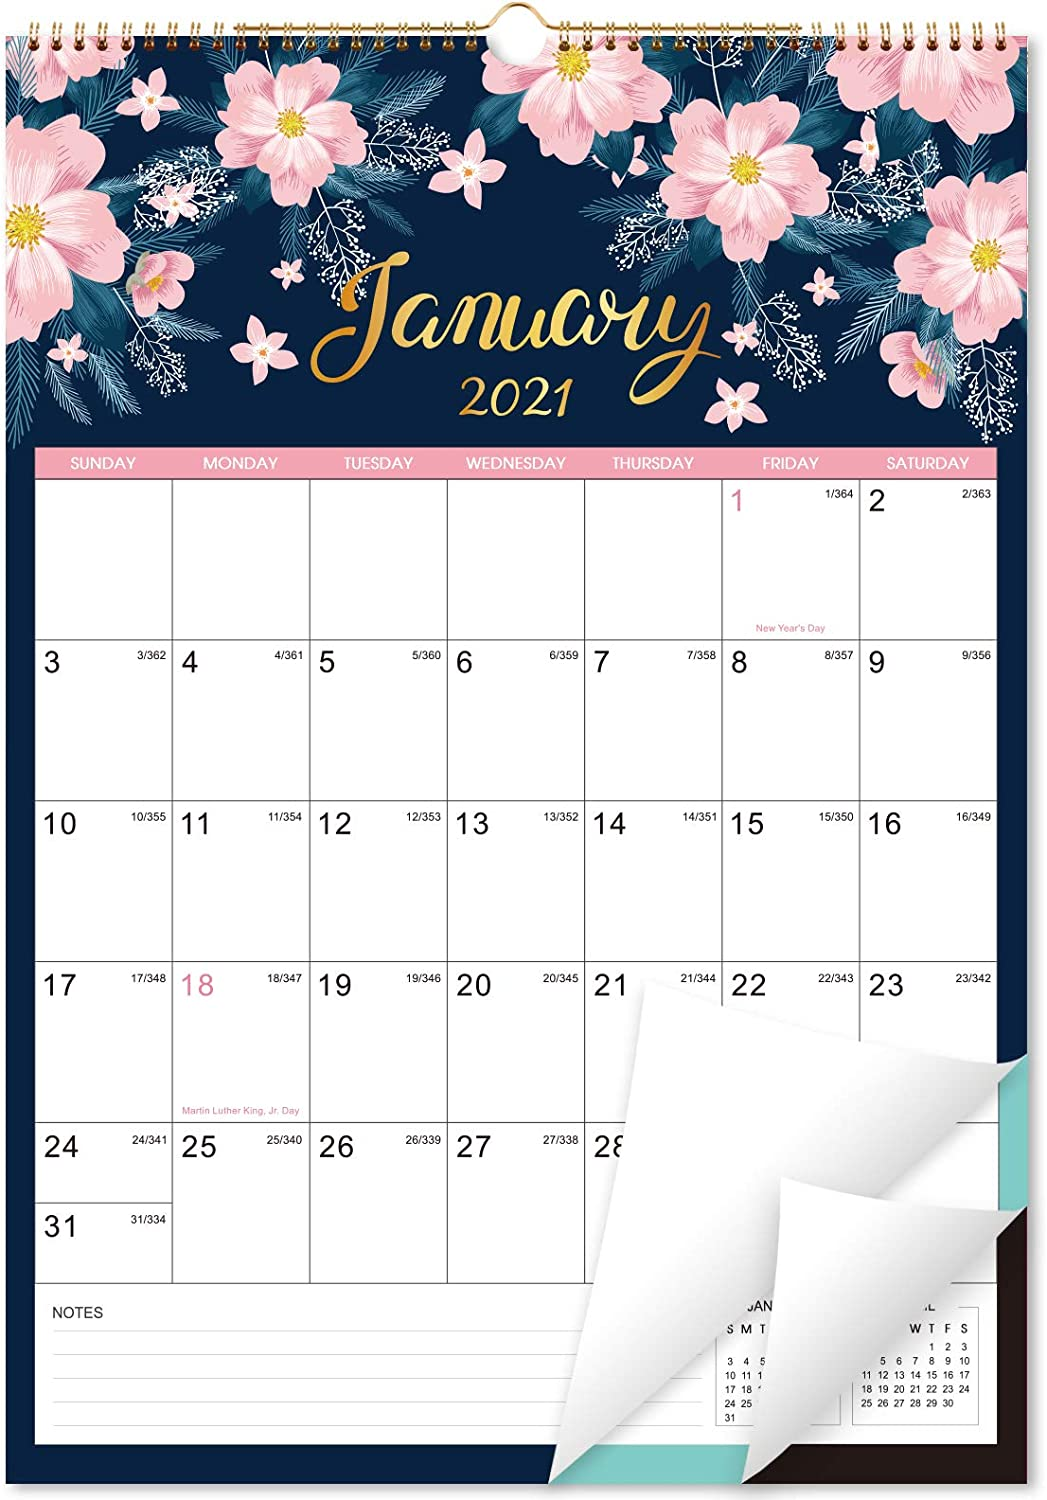 Amazon Com 2021 2022 Calendar Monthly Wall Calendar Planner From Jan 2021 Jun 2022 12 X 17 Twin Wire Binding Large Blocks With Julian Dates Perfect For Planning And Organizing Your Home